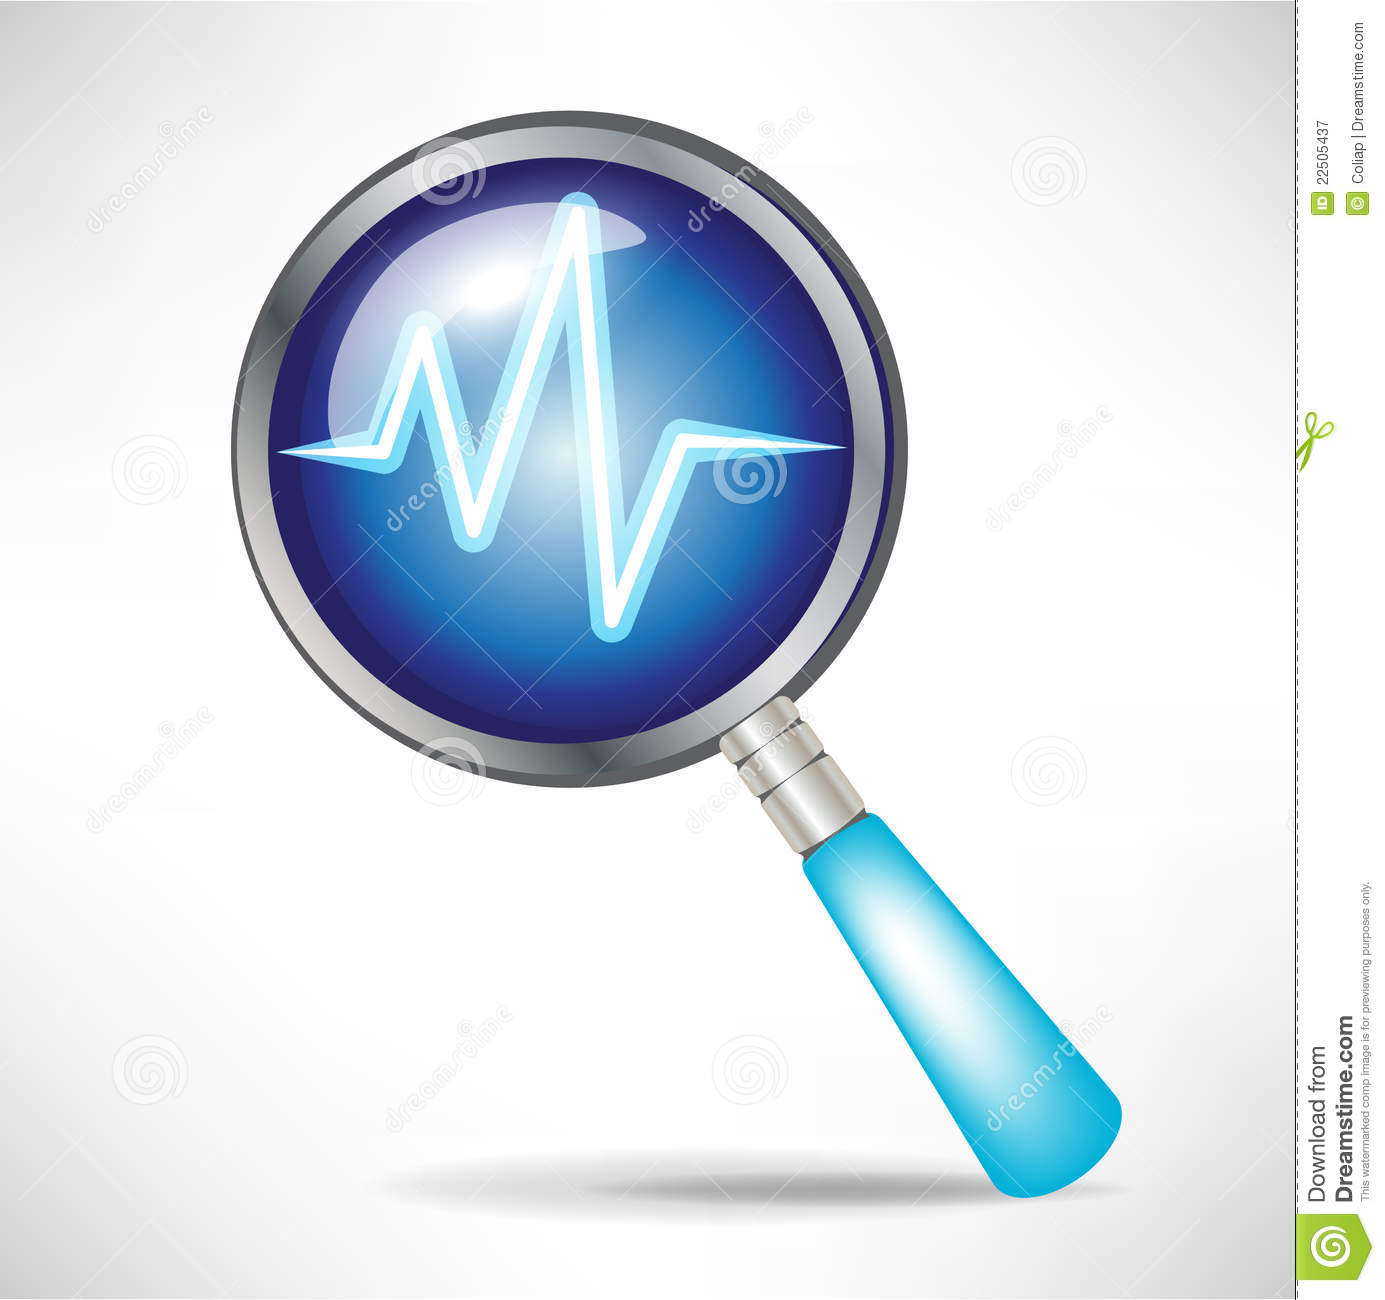 Diagnostic Icon Royalty Free Stock Photography - Image: 22505437